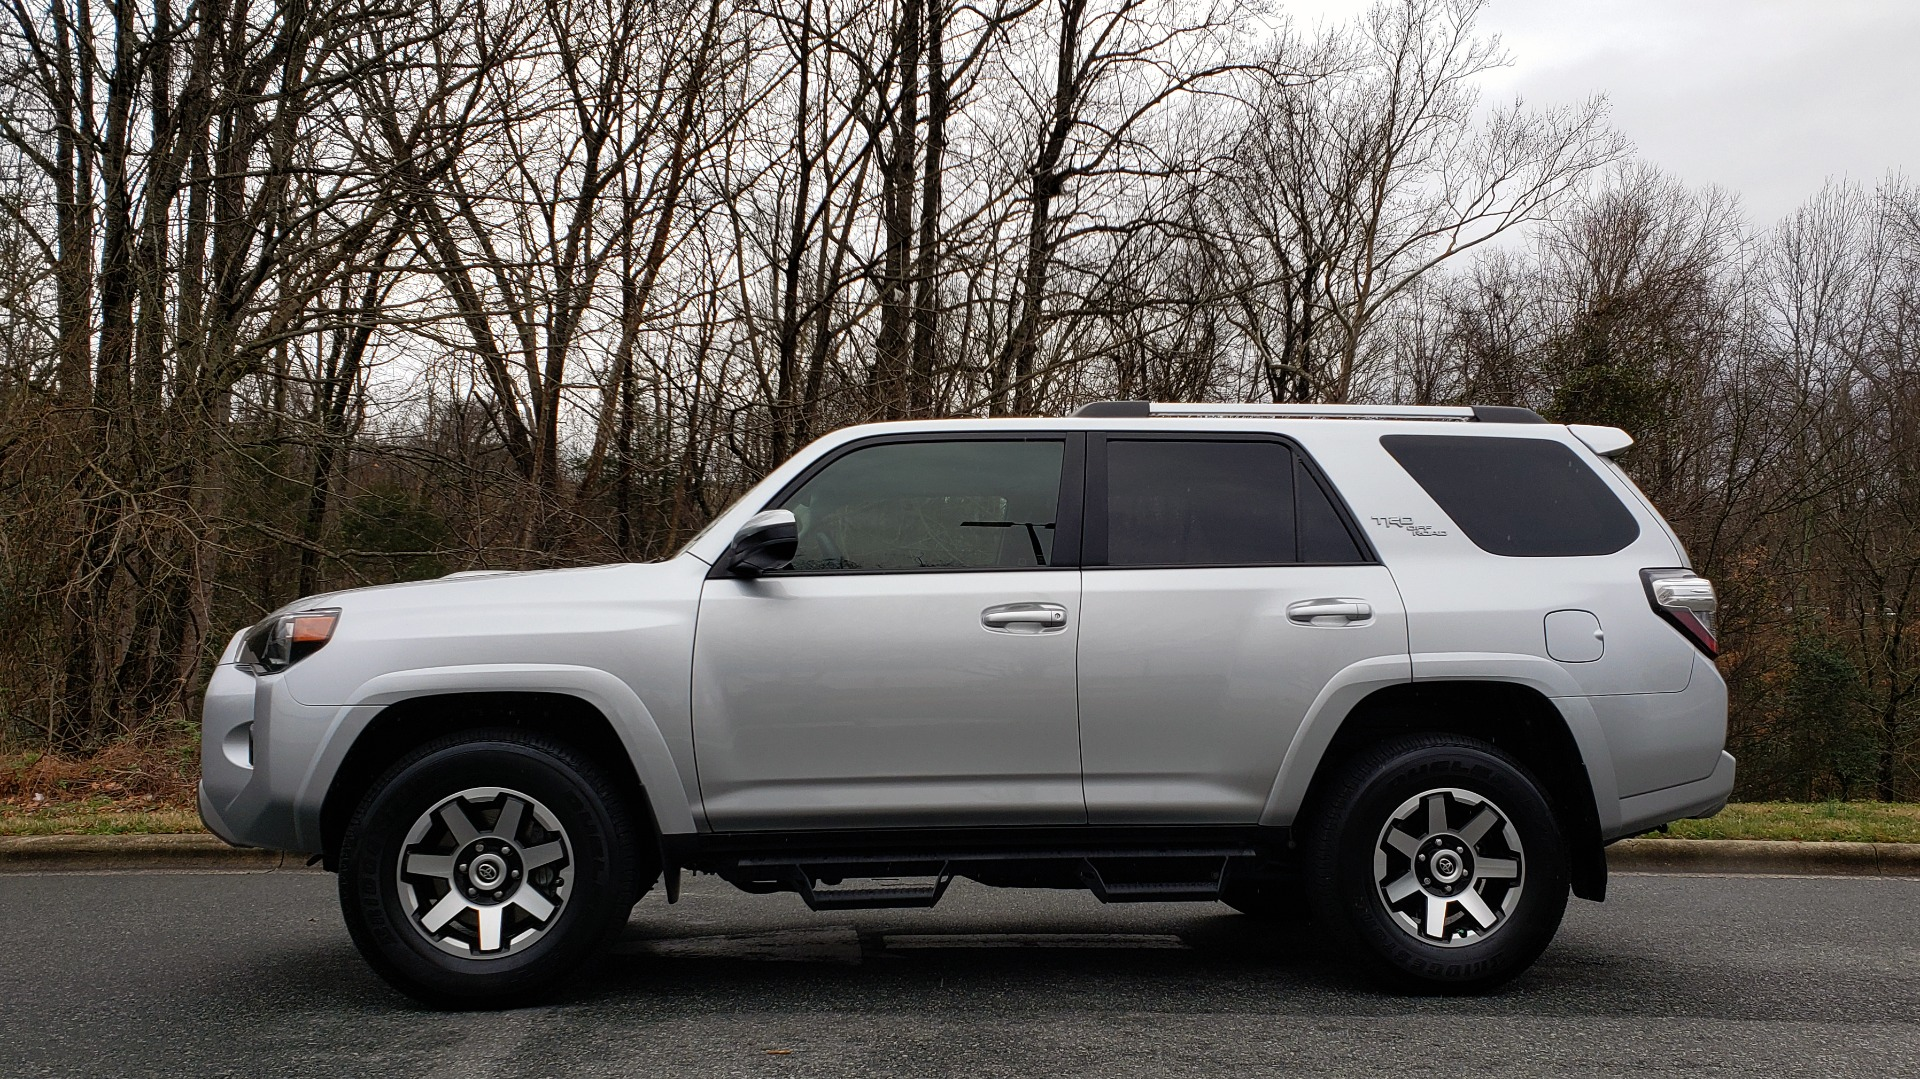 Used 2018 Toyota 4RUNNER TRD OFF-ROAD 4X4 / V6 / AUTO / LEATHER / LOW MILES! for sale Sold at Formula Imports in Charlotte NC 28227 2